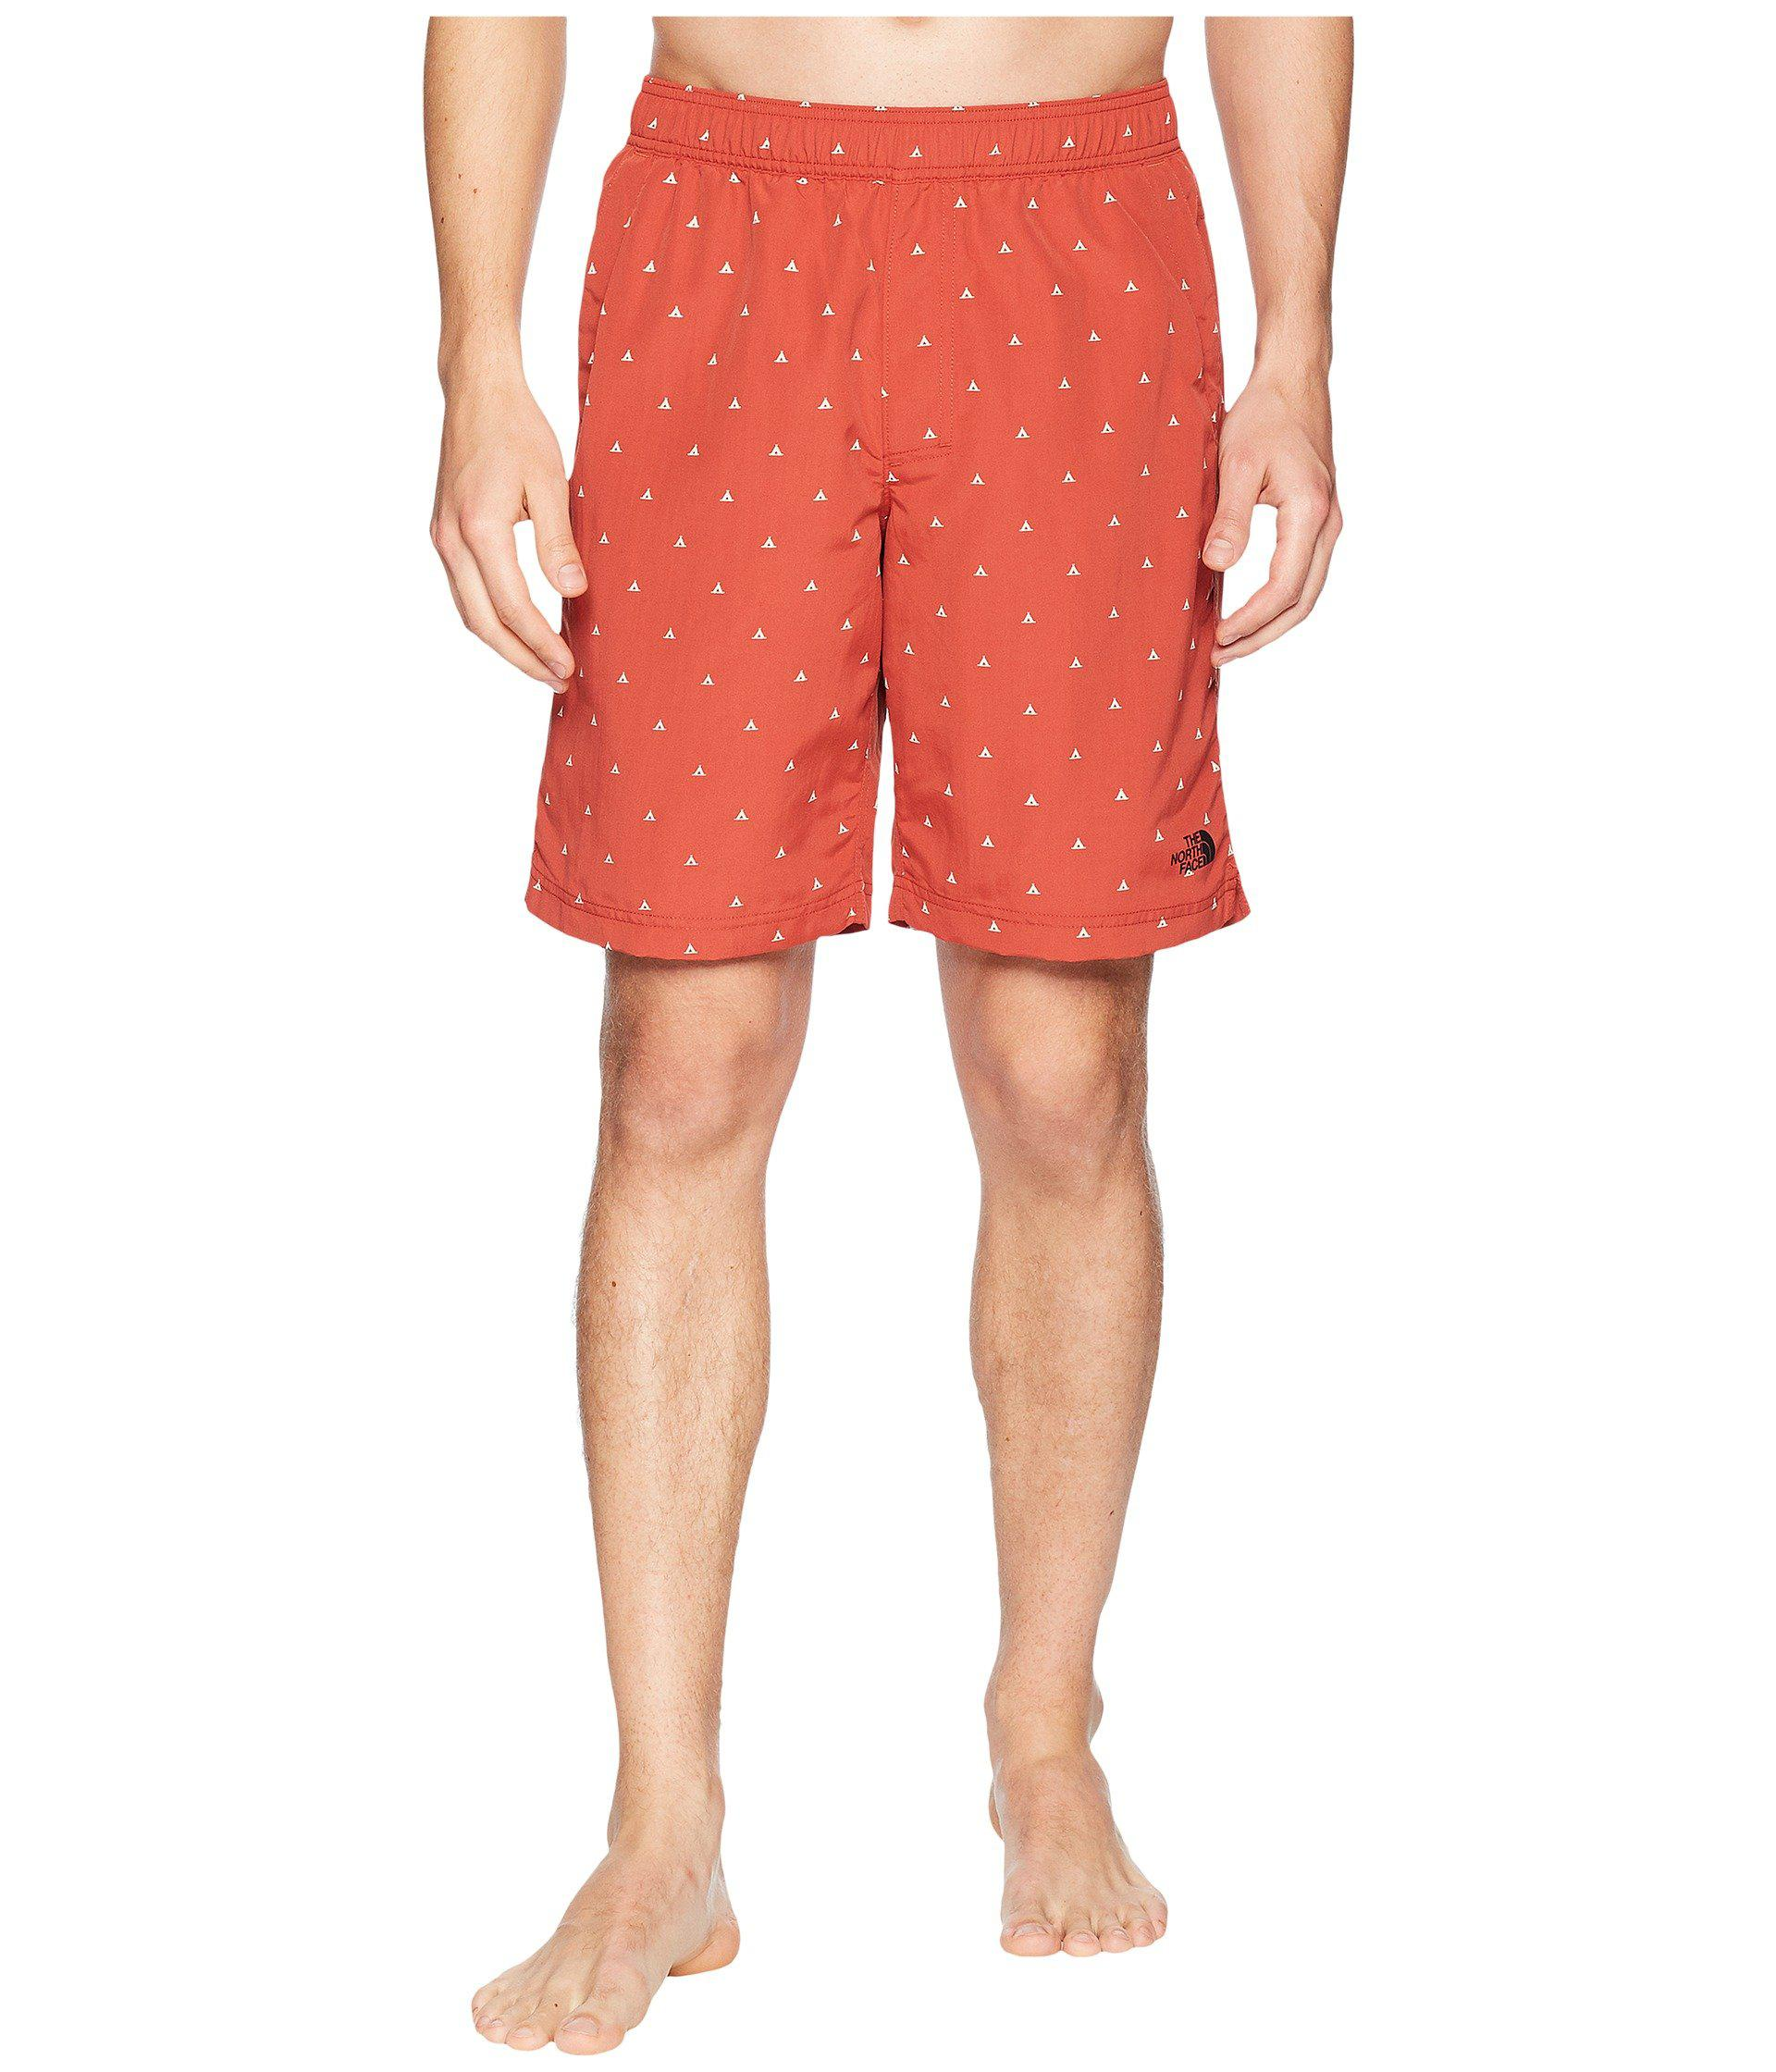 cccfd4f20646f Lyst - The North Face Class V Pull-on Trunk - Long in Red for Men